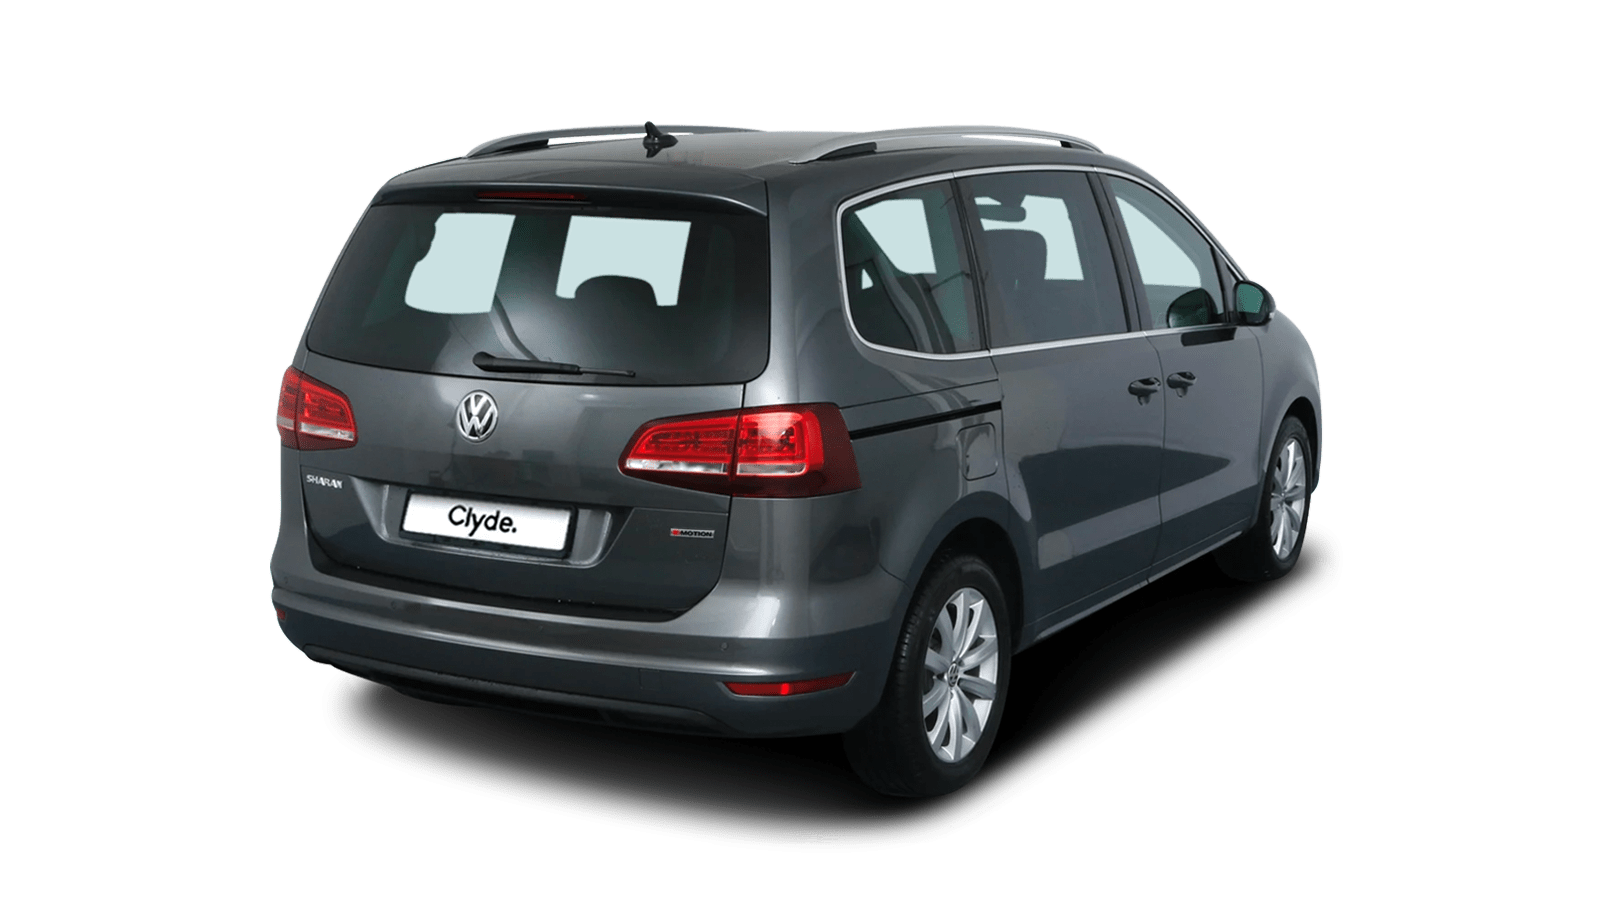 VW Sharan Grey front - Clyde car subscription